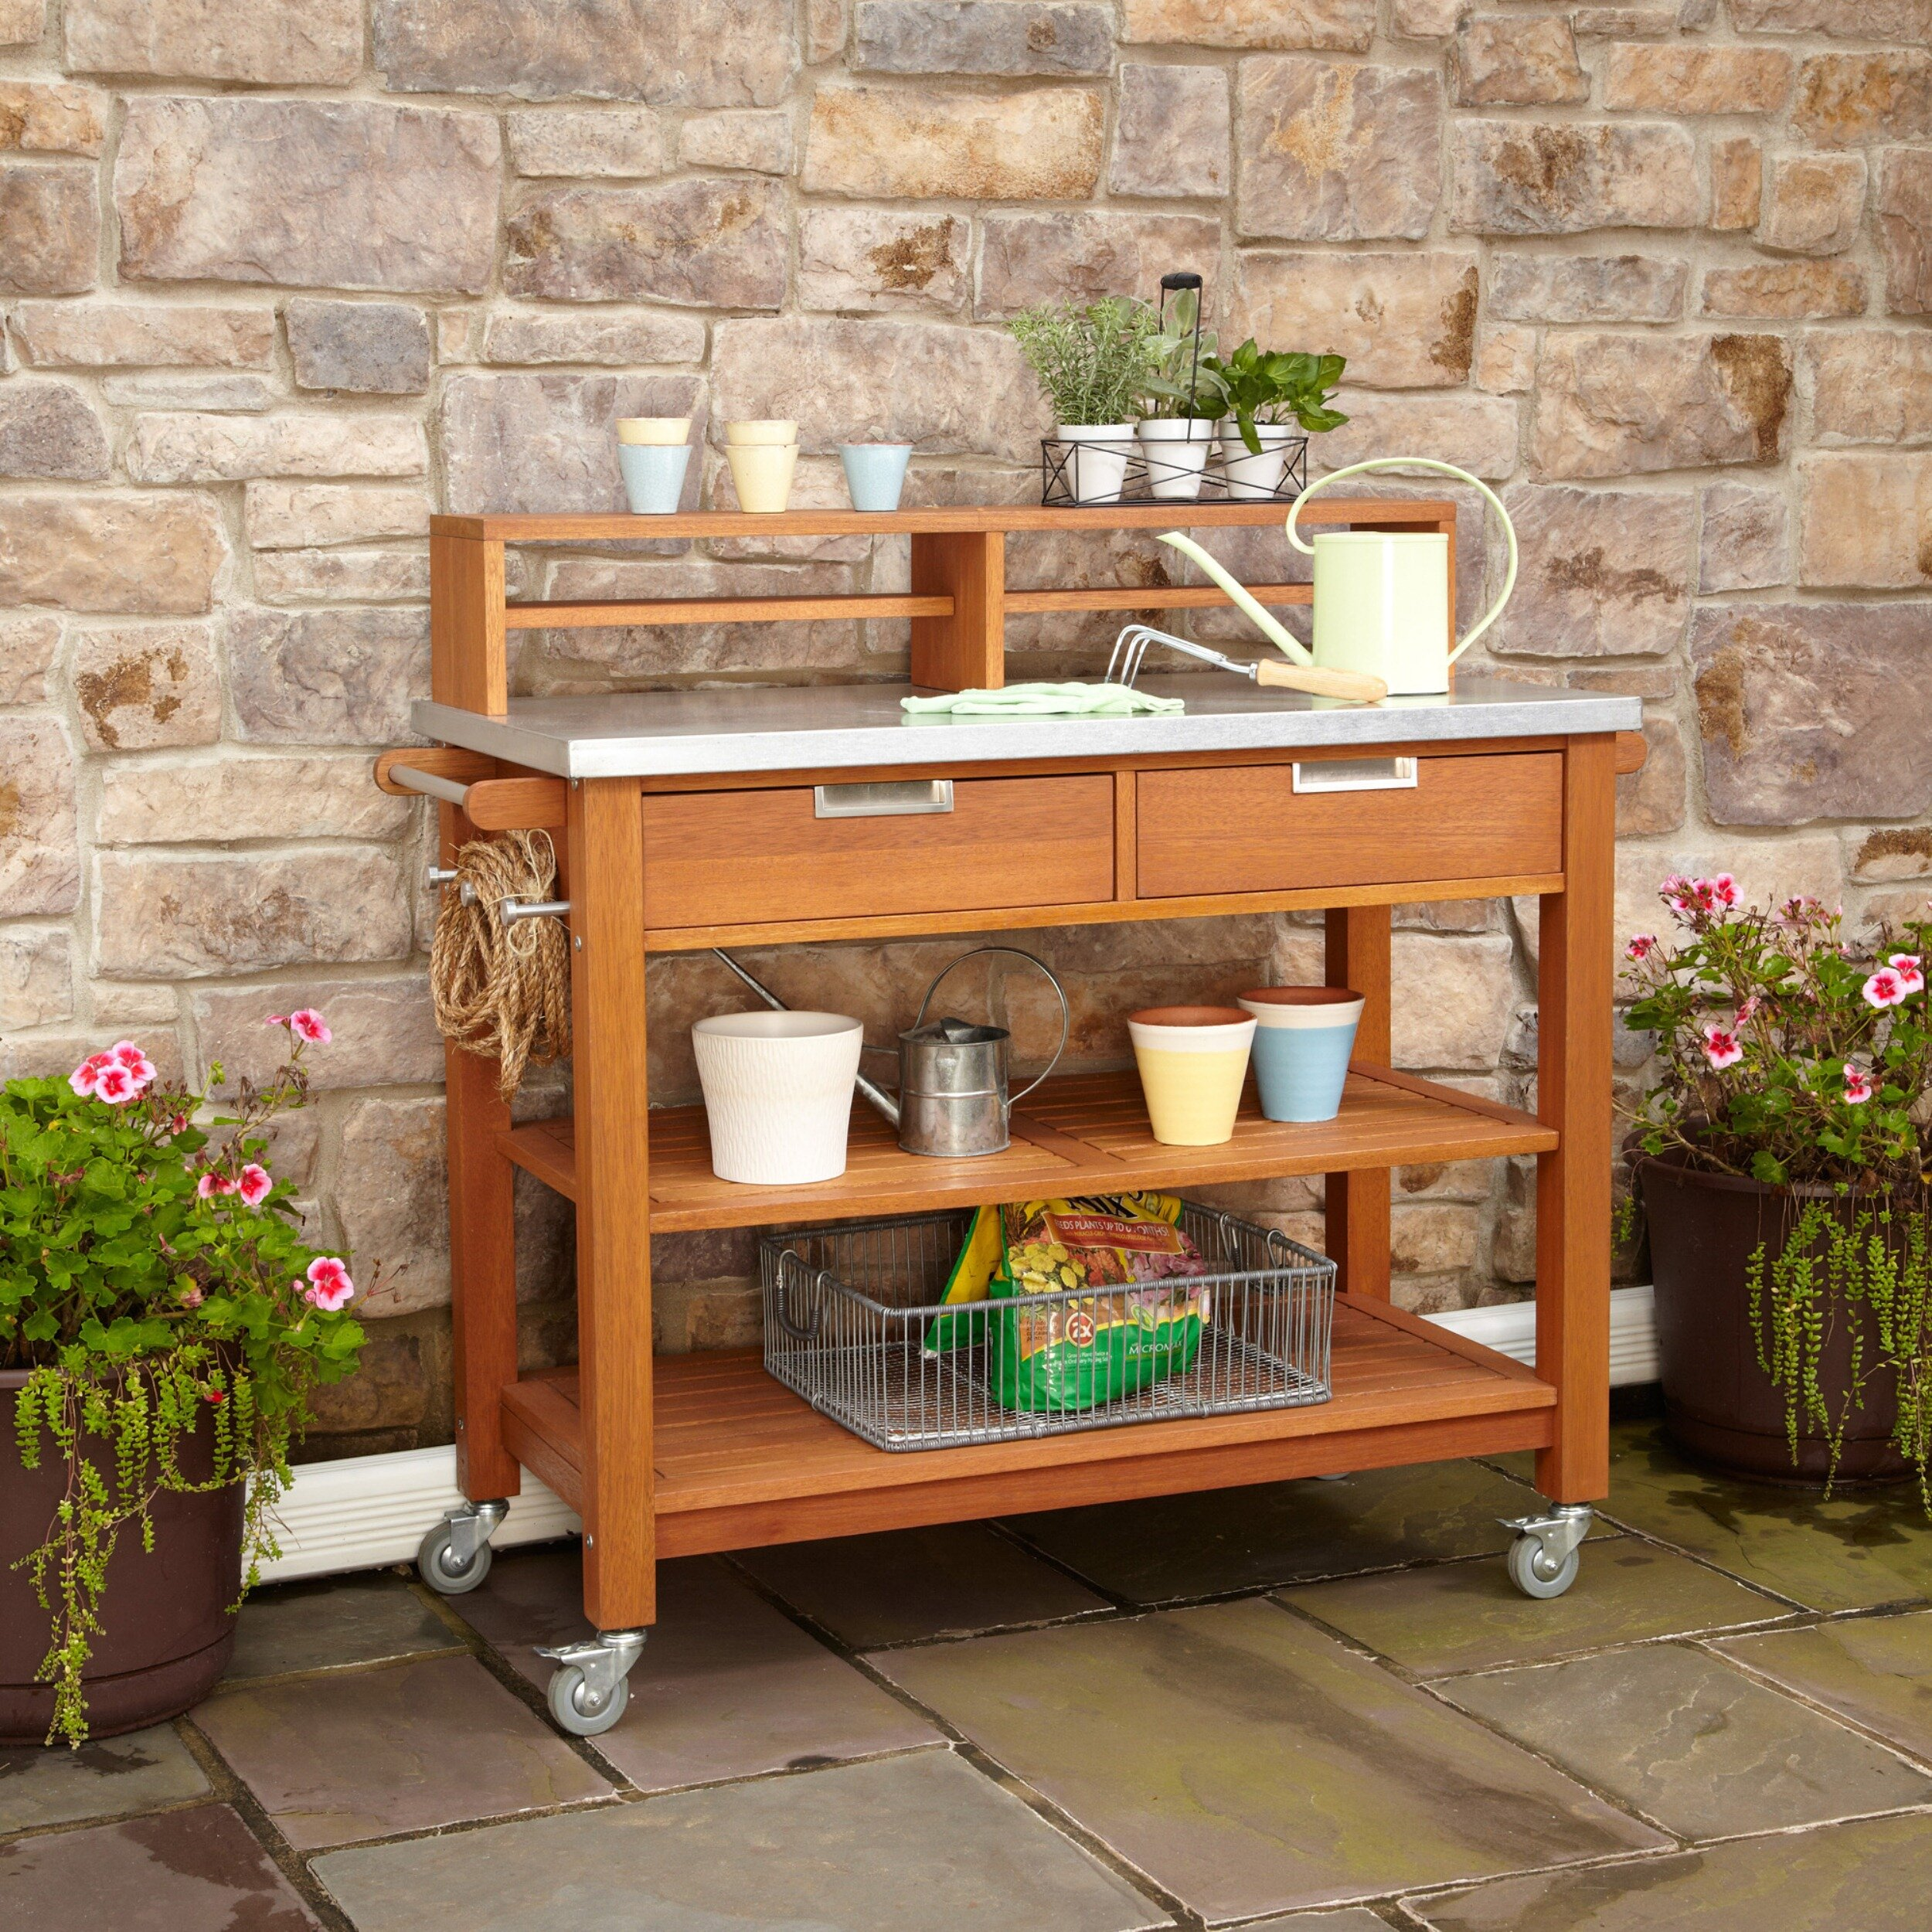 img urbanamericana decor rustic products potting outdoor table plant collections